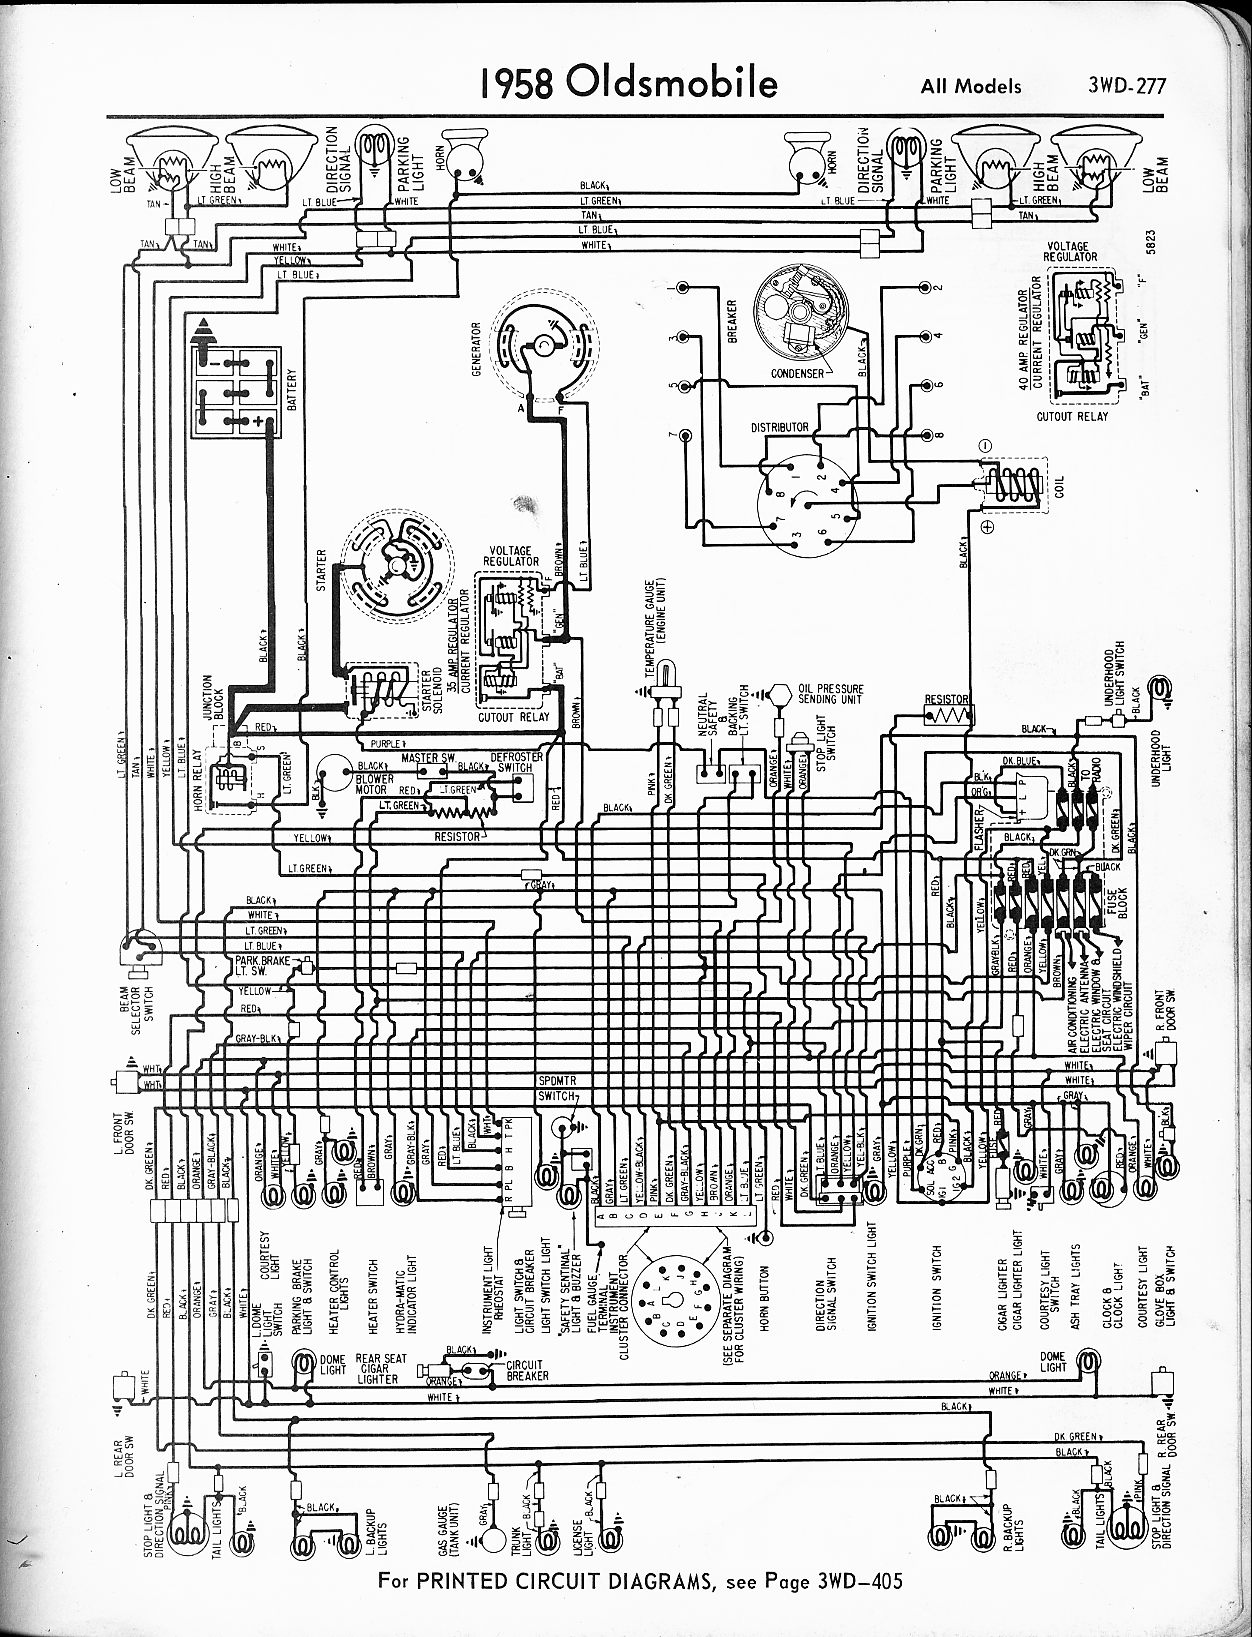 98 Oldsmobile Radio Wiring Diagram Best Secret Regency Brougham For 1988 Free 1950 Diagrams